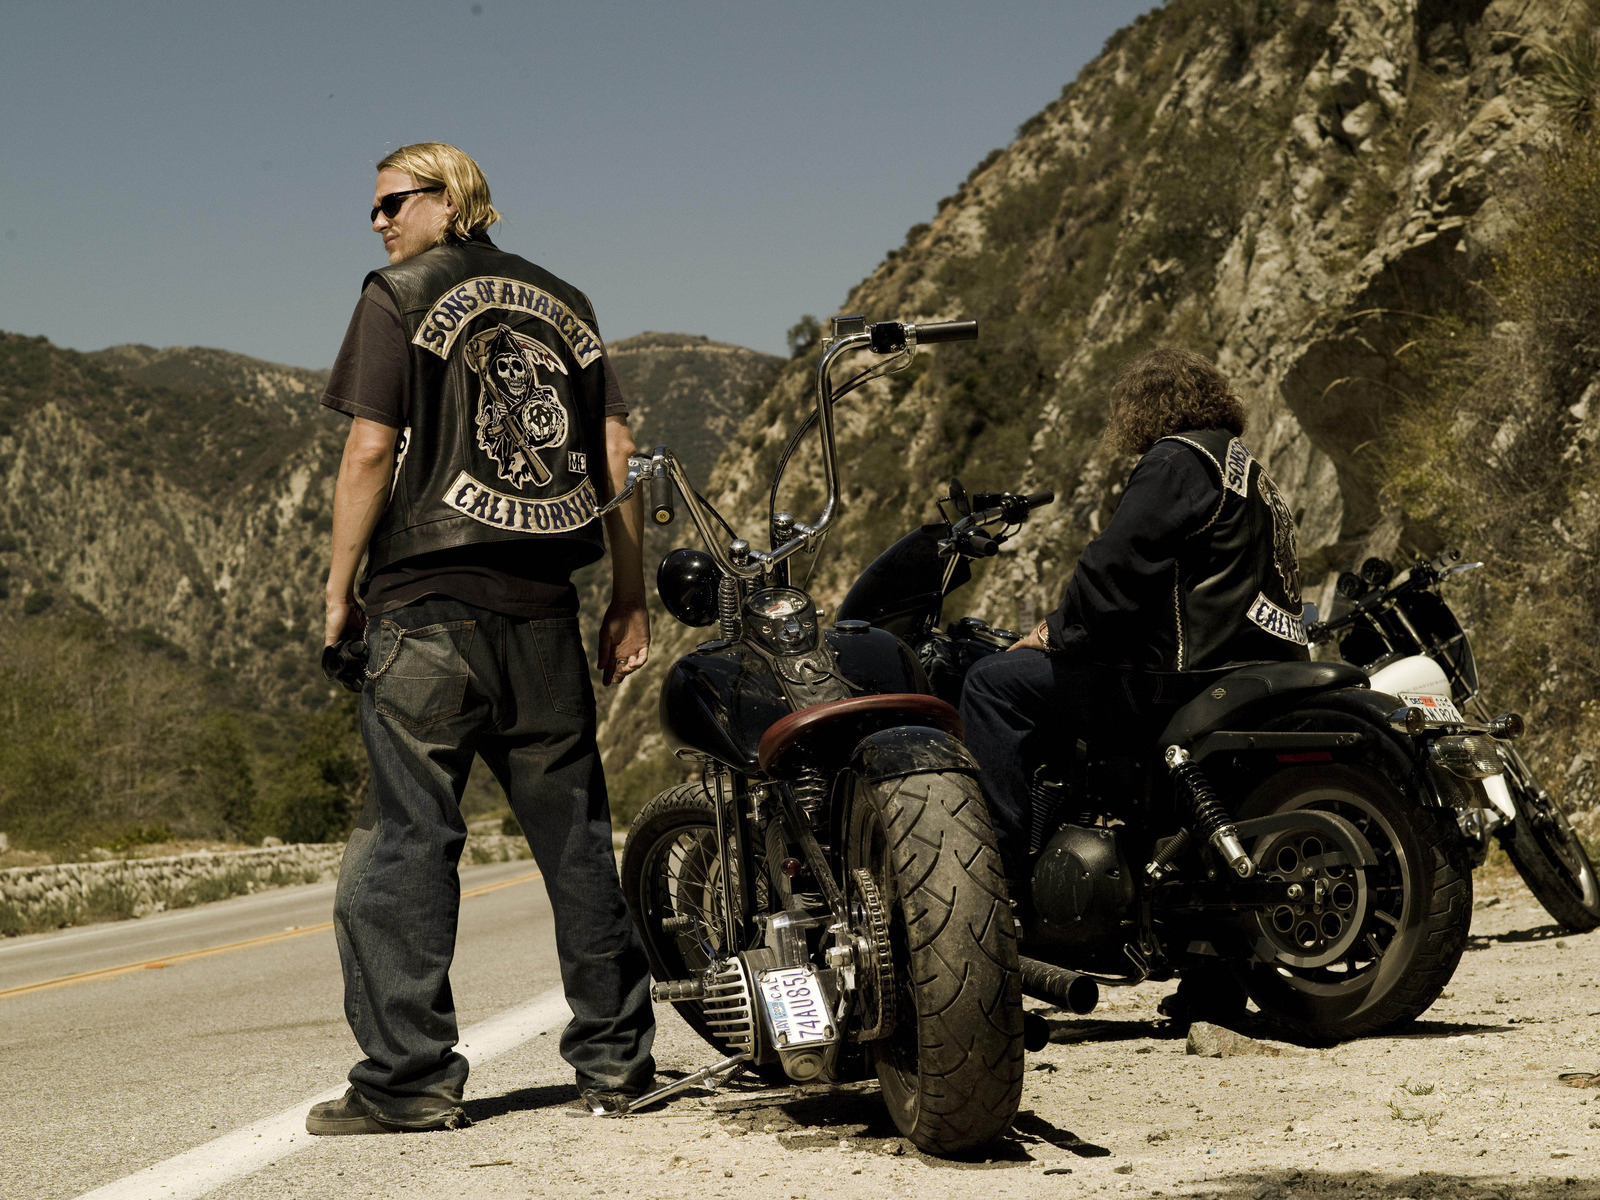 Review: 'Sons of Anarchy' Sets The Stage For A Satisfying Conclusion